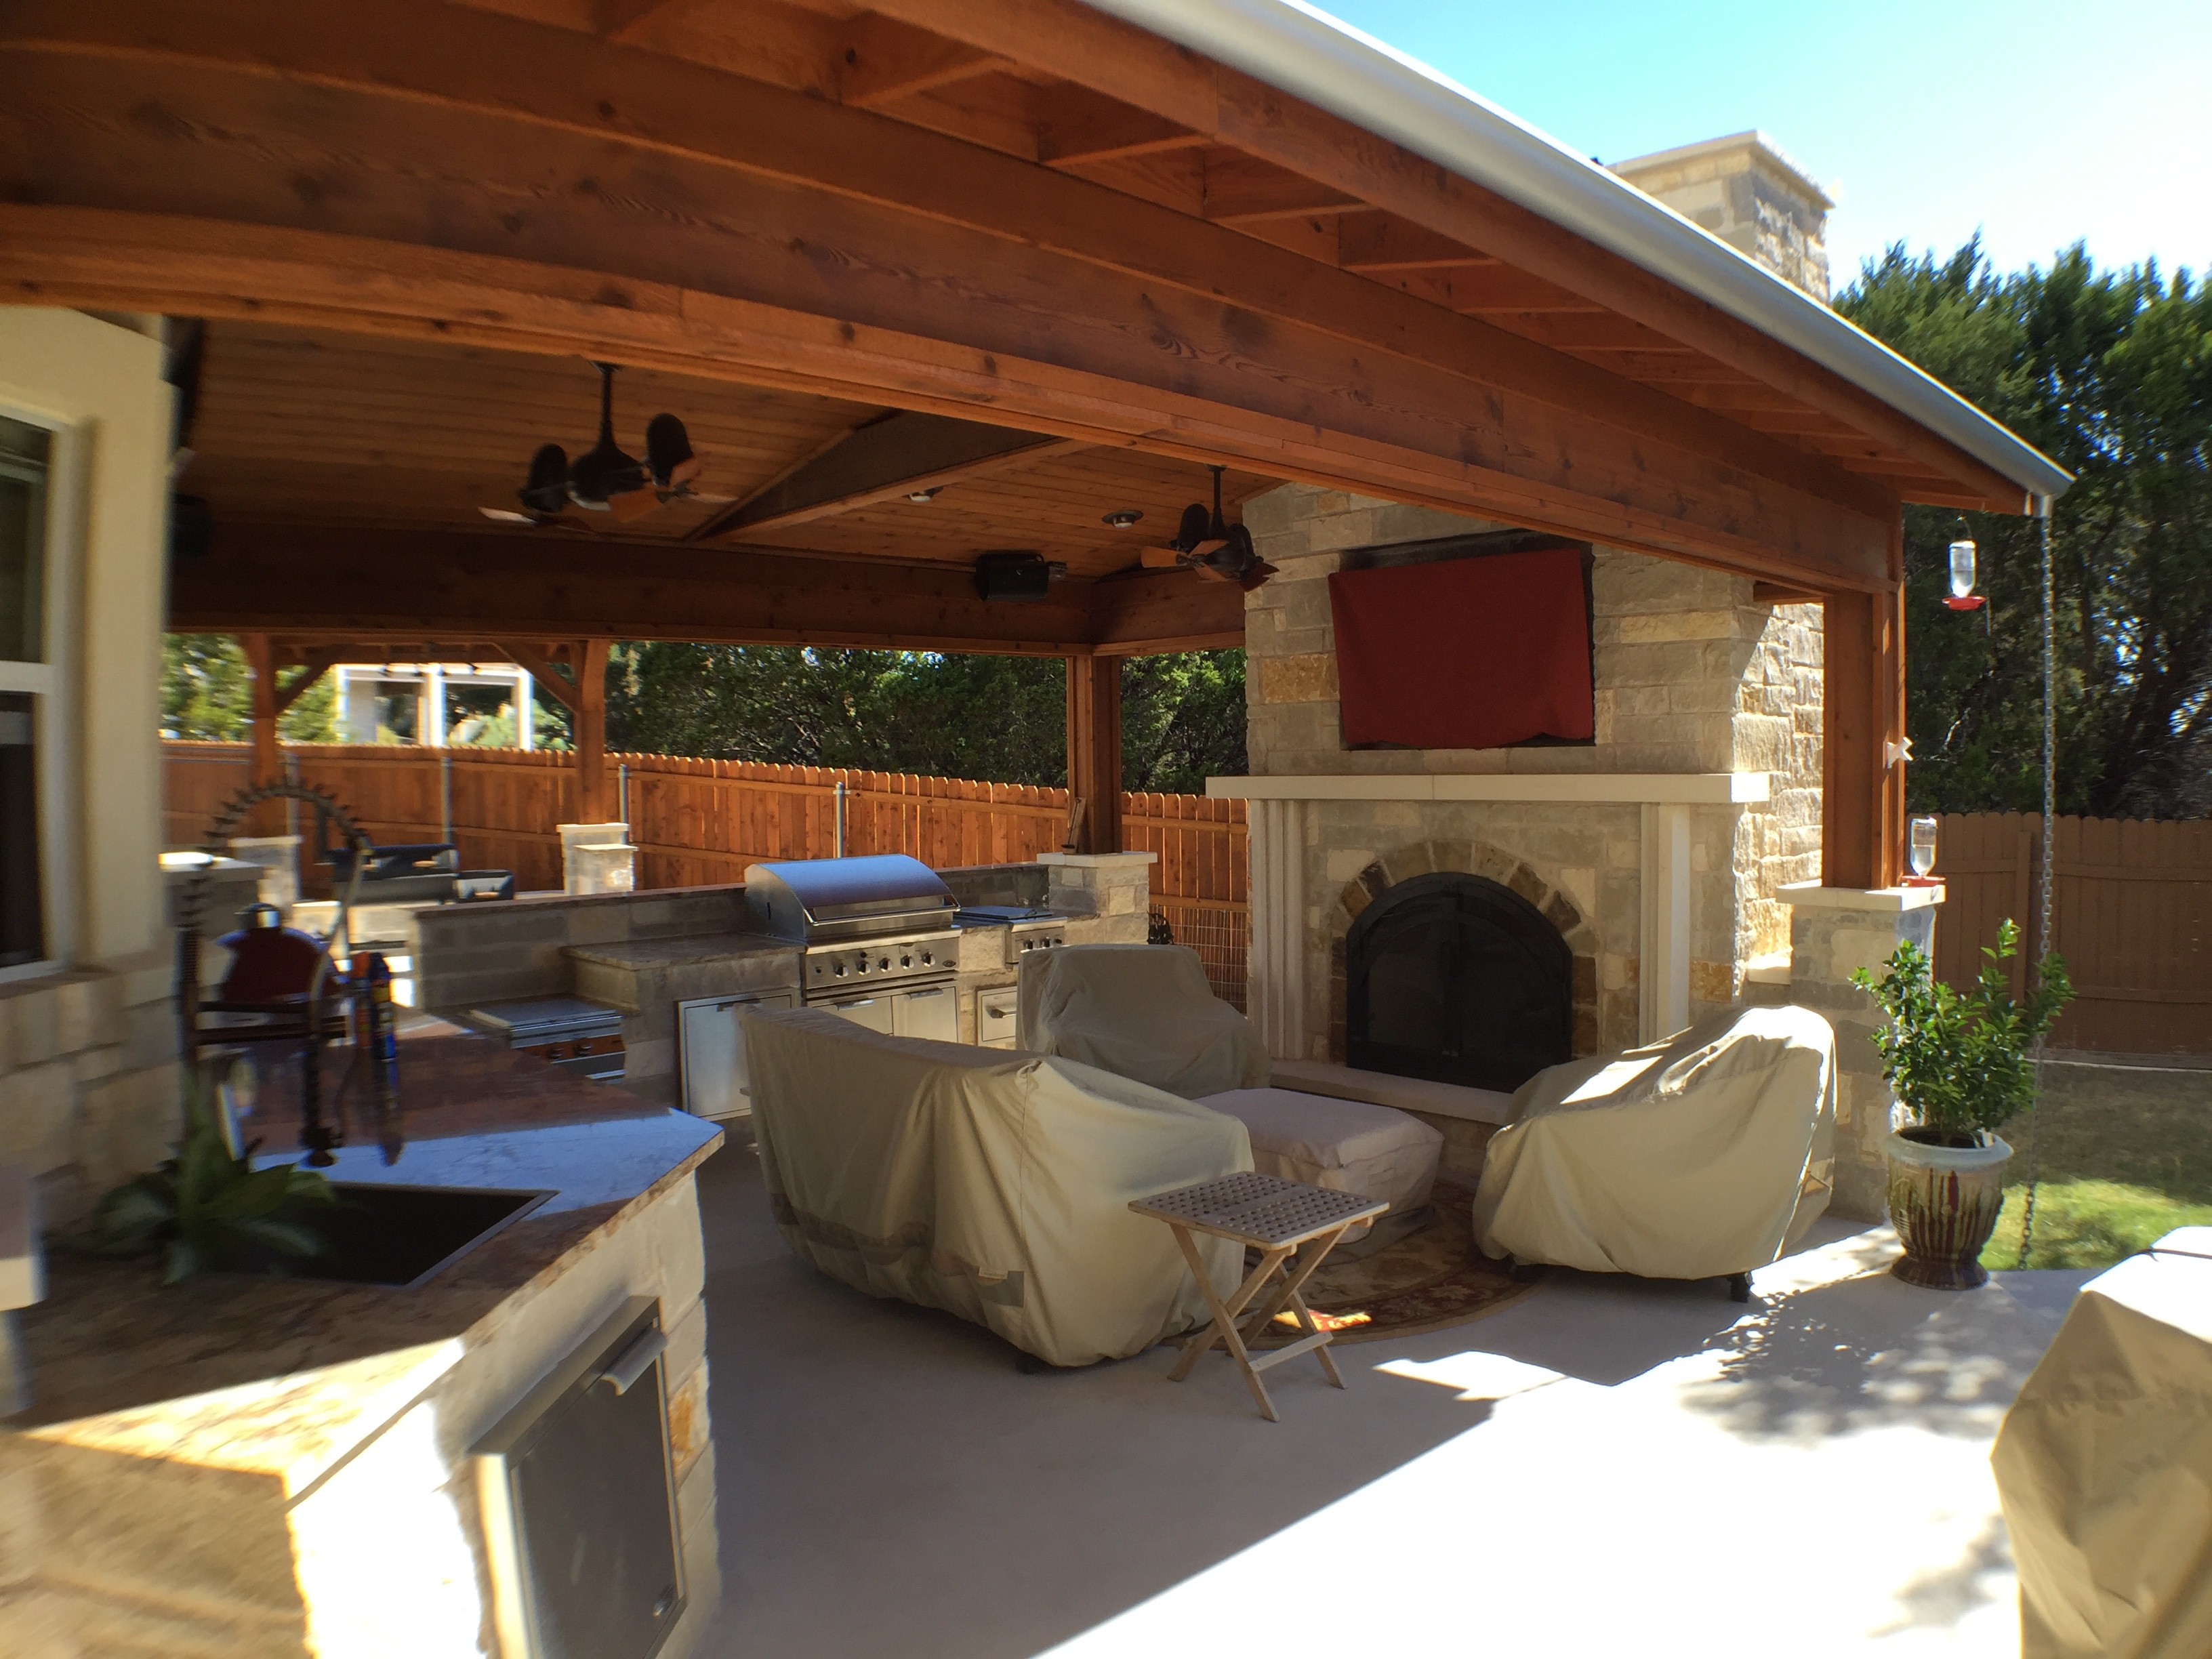 Lago Vista TX patio cover | Austin Decks, Pergolas ... on Covered Outdoor Kitchen With Fireplace id=95081